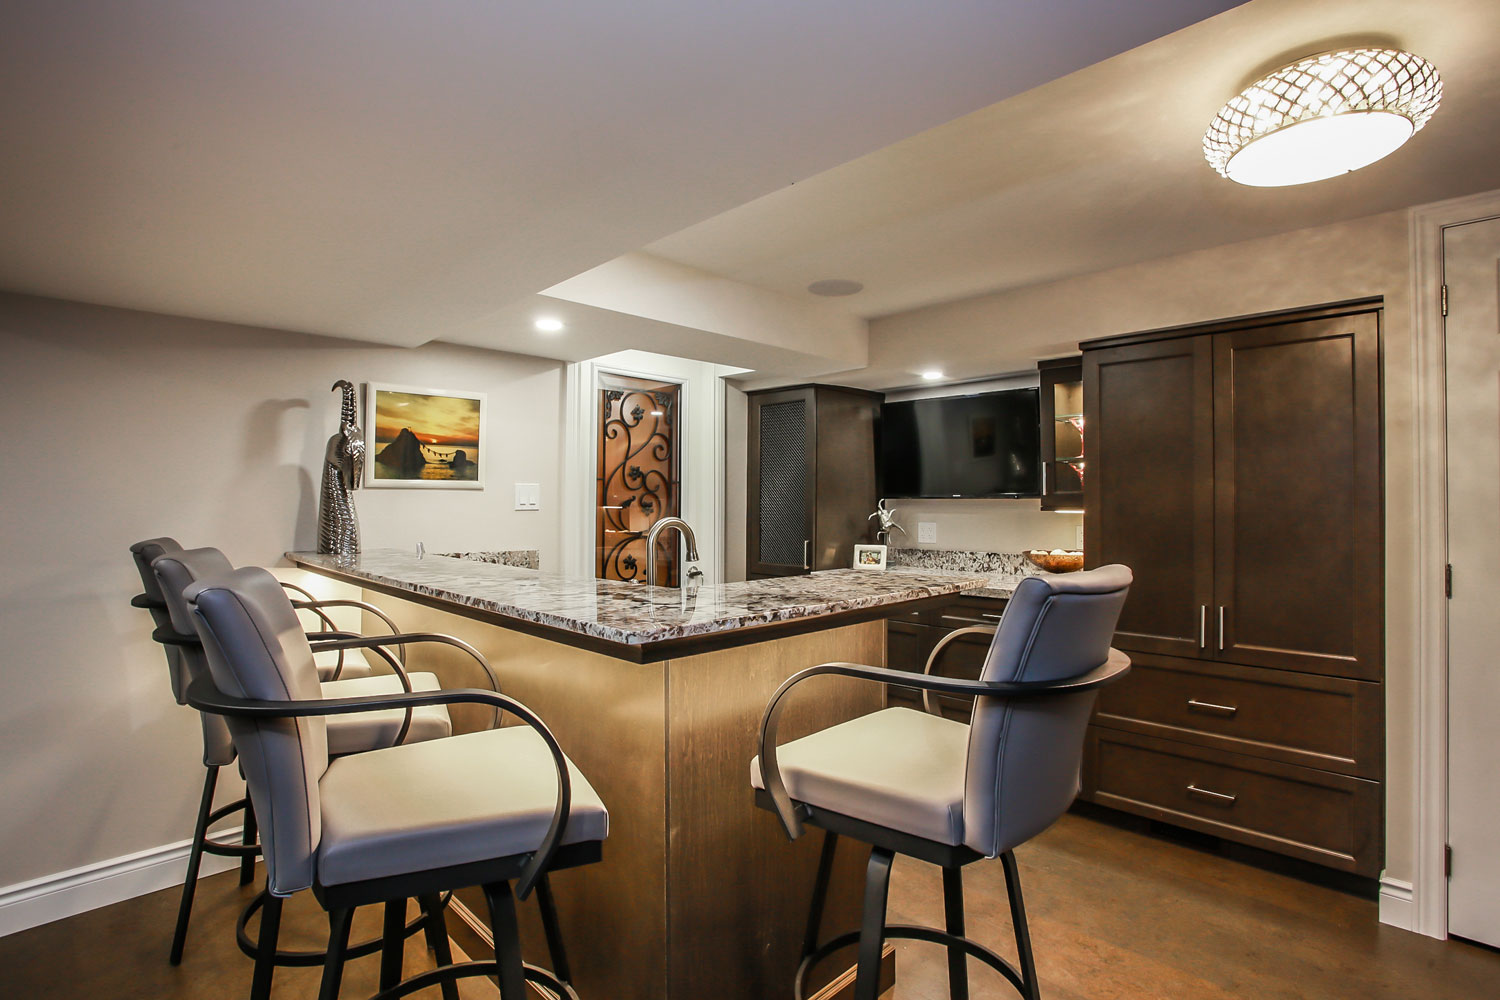 basement suite renovation with kitchen island